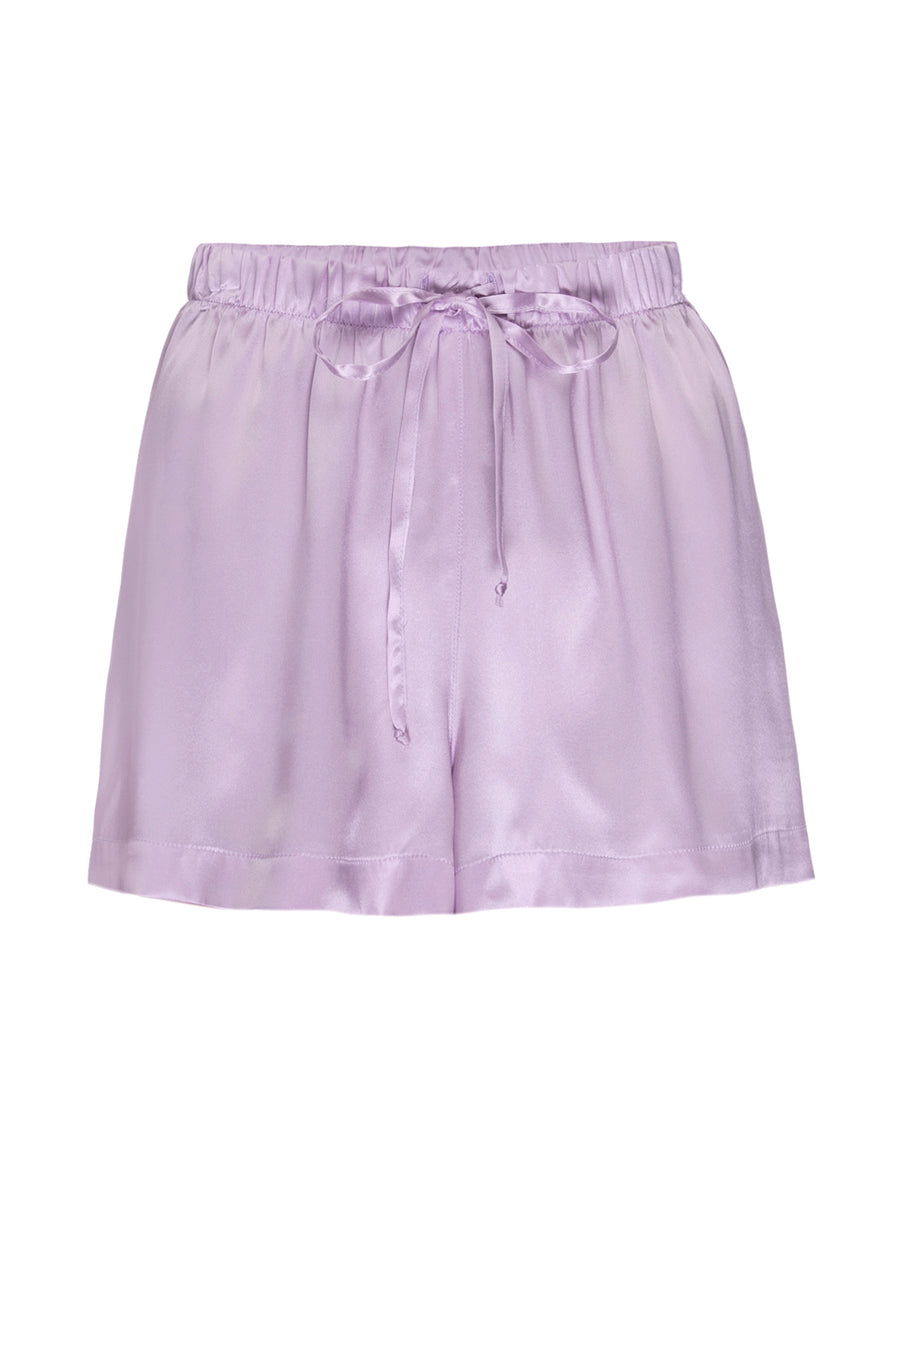 Silk Charmeuse PJ Shorts: Lilac